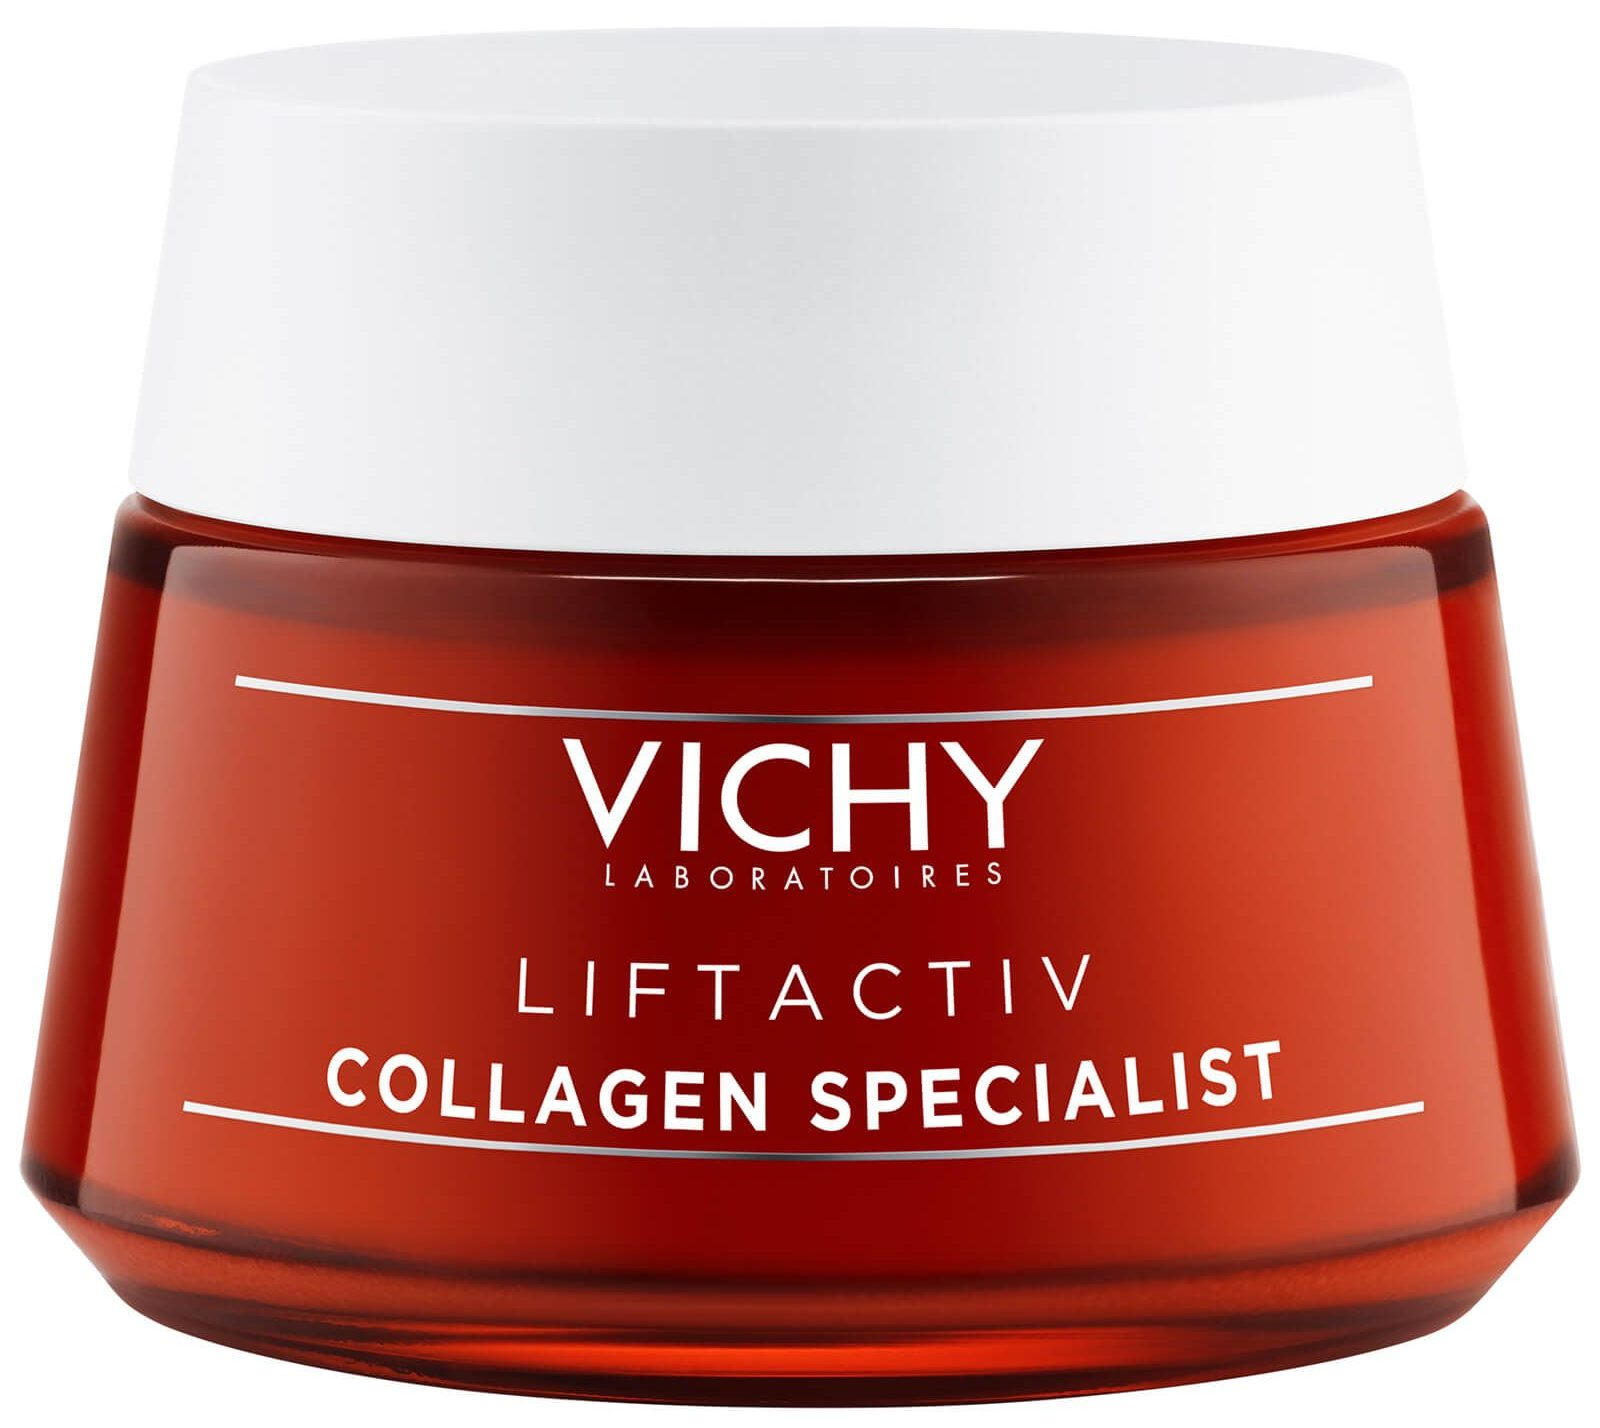 My Celebrity Life – Vichy Liftactiv Collagen Specialist Day Cream